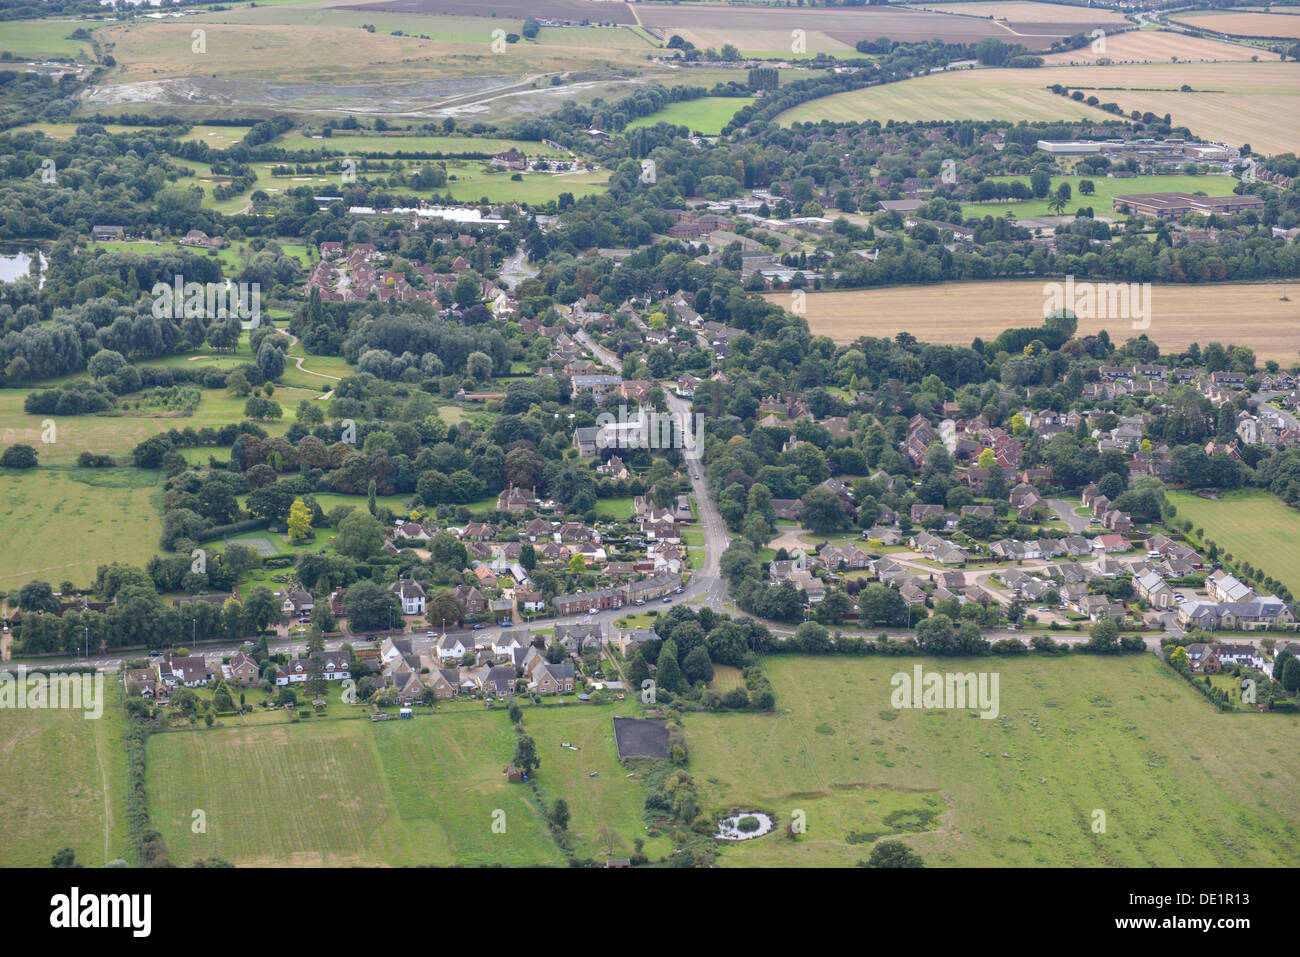 Aerial photograph of Brampton - Stock Image